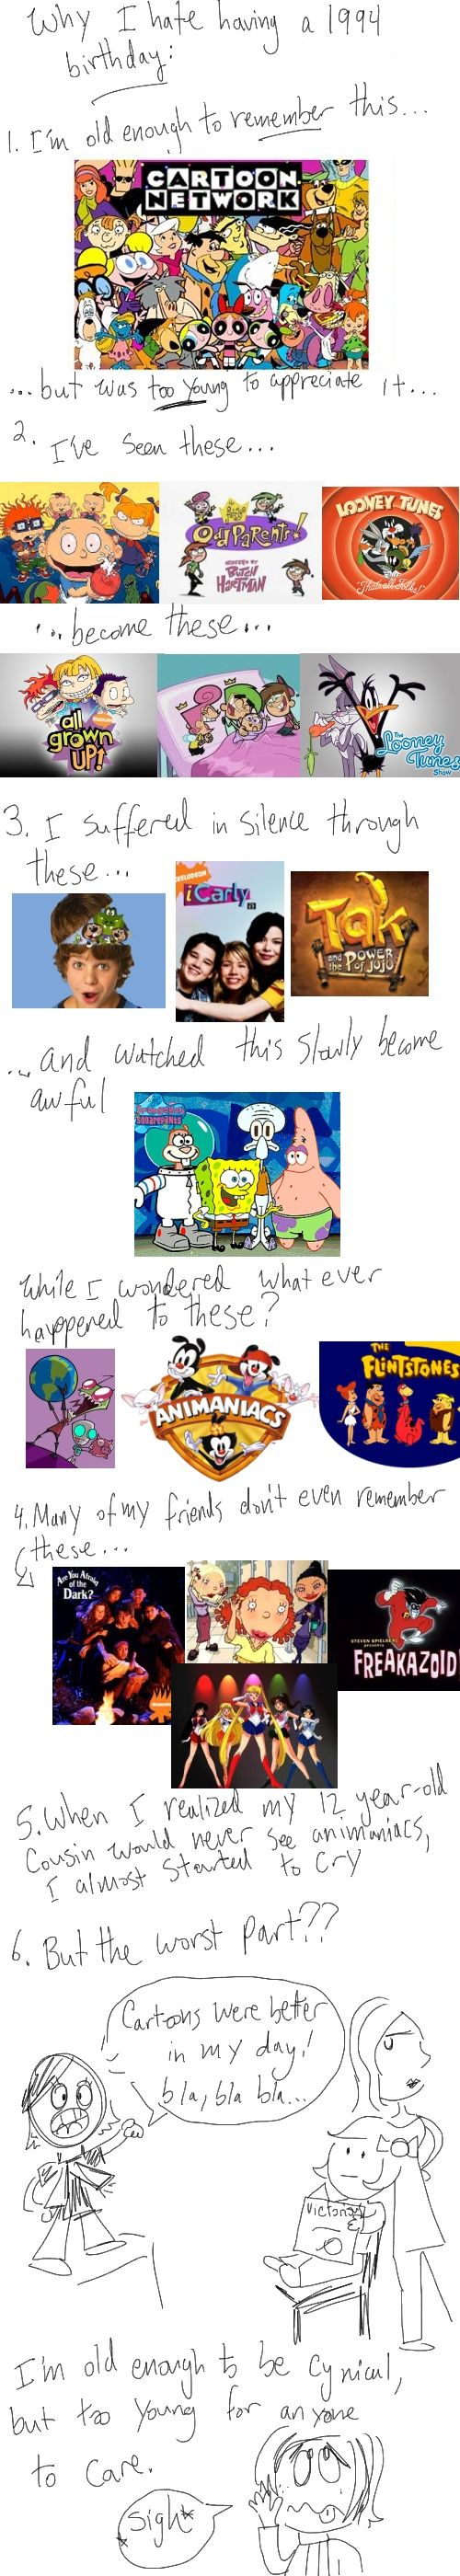 Sad truths for a 90's kid. I was born in 90 so I remember the older shows better, but I still had to suffer through garbage. What ever happened to All that and Wishbone!?!